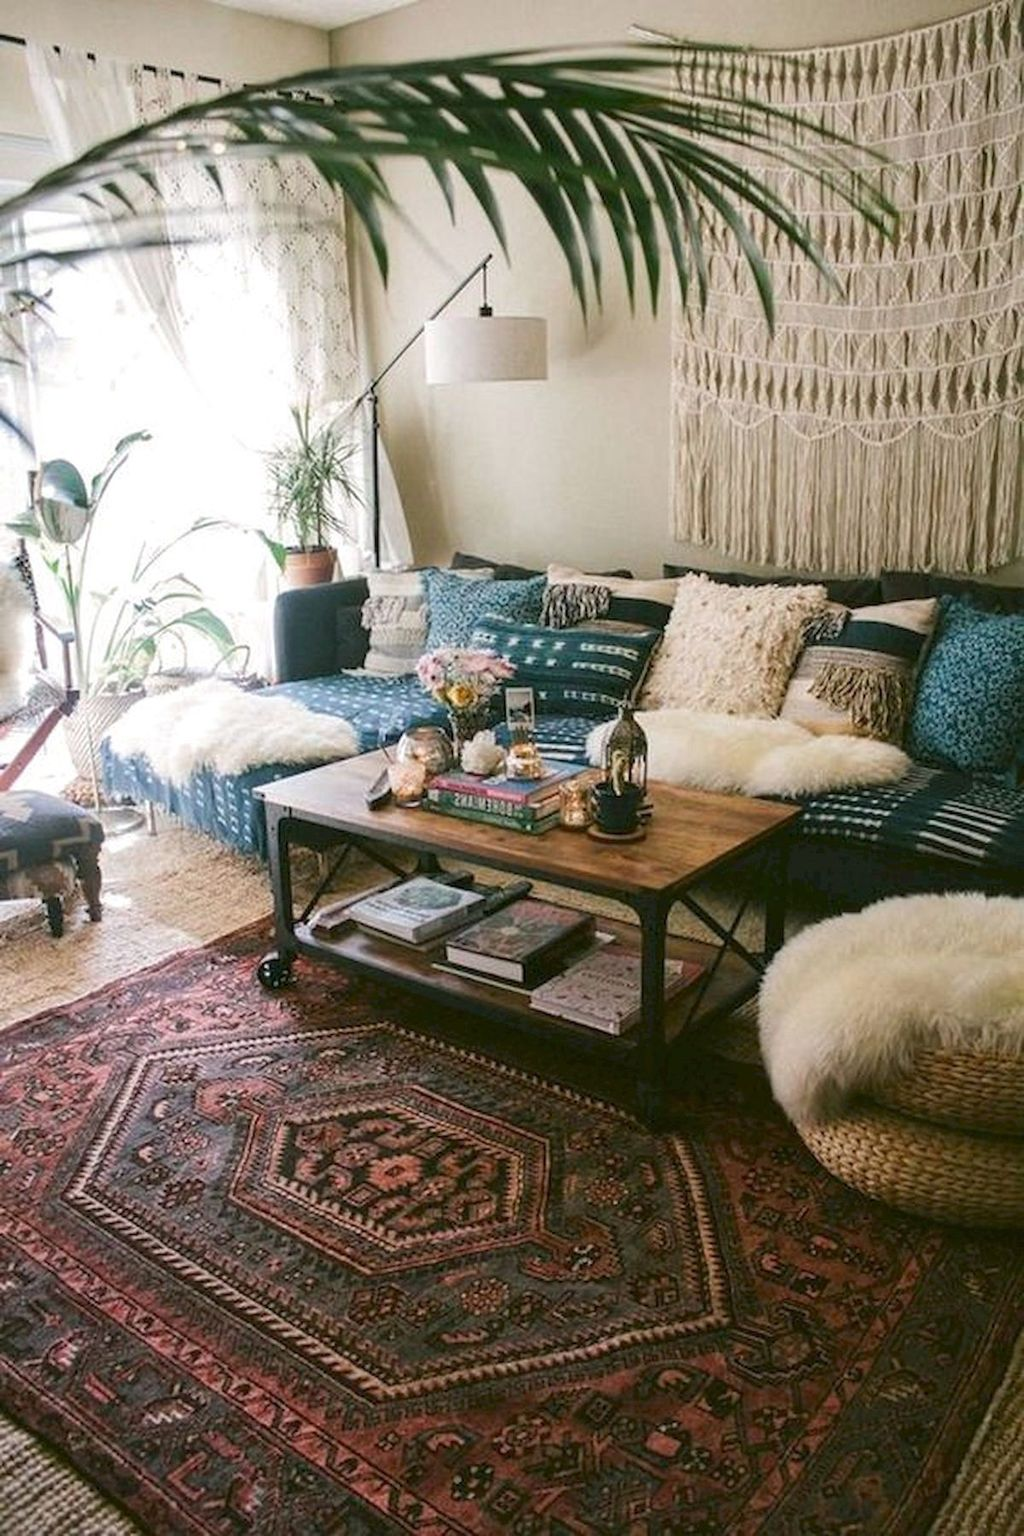 The Best Rustic Bohemian Living Room Decor Ideas 04